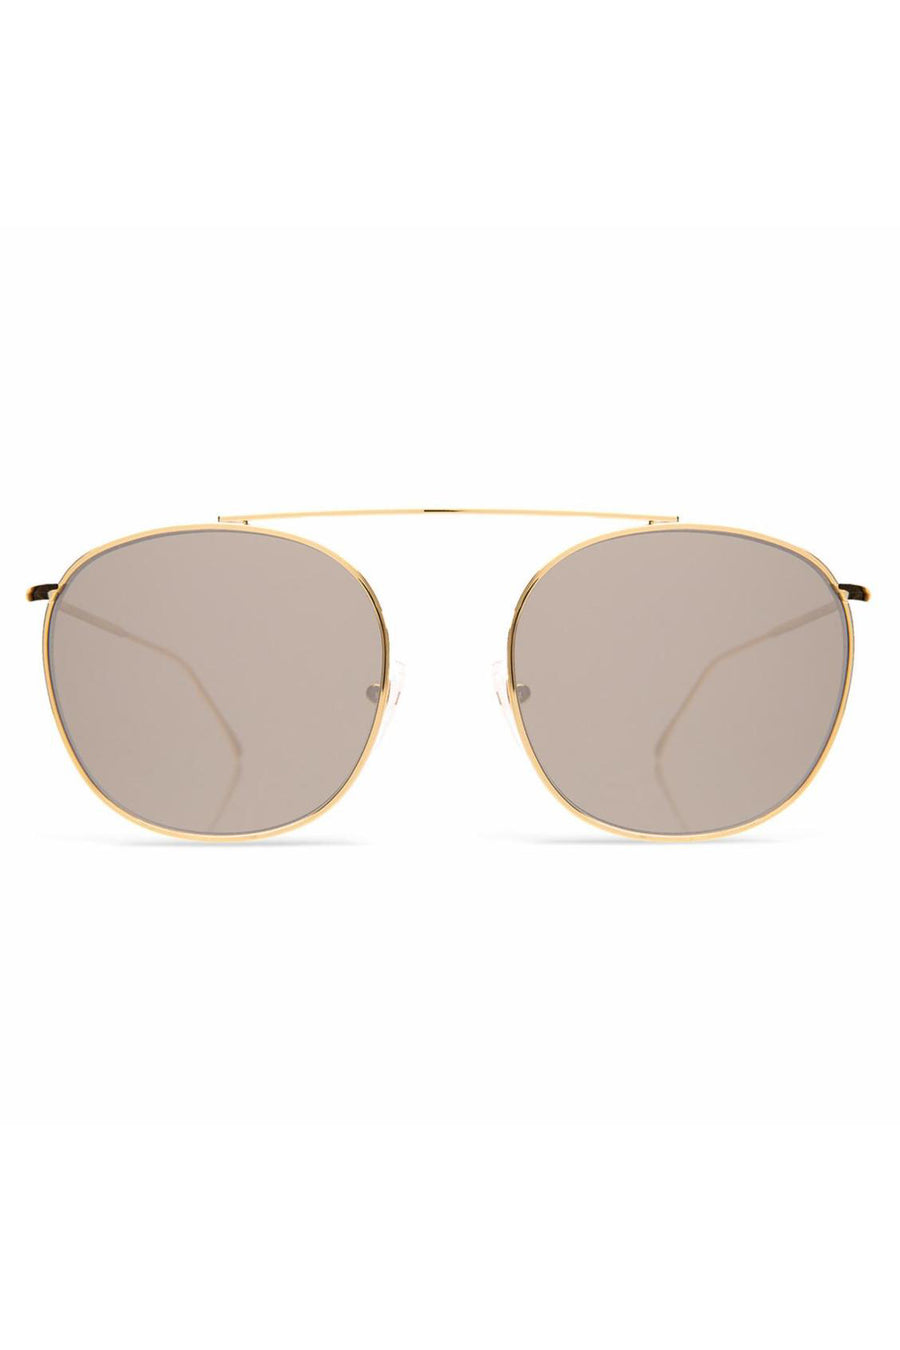 Mykonos II - Rose Gold w/ Grey Flat Lenses